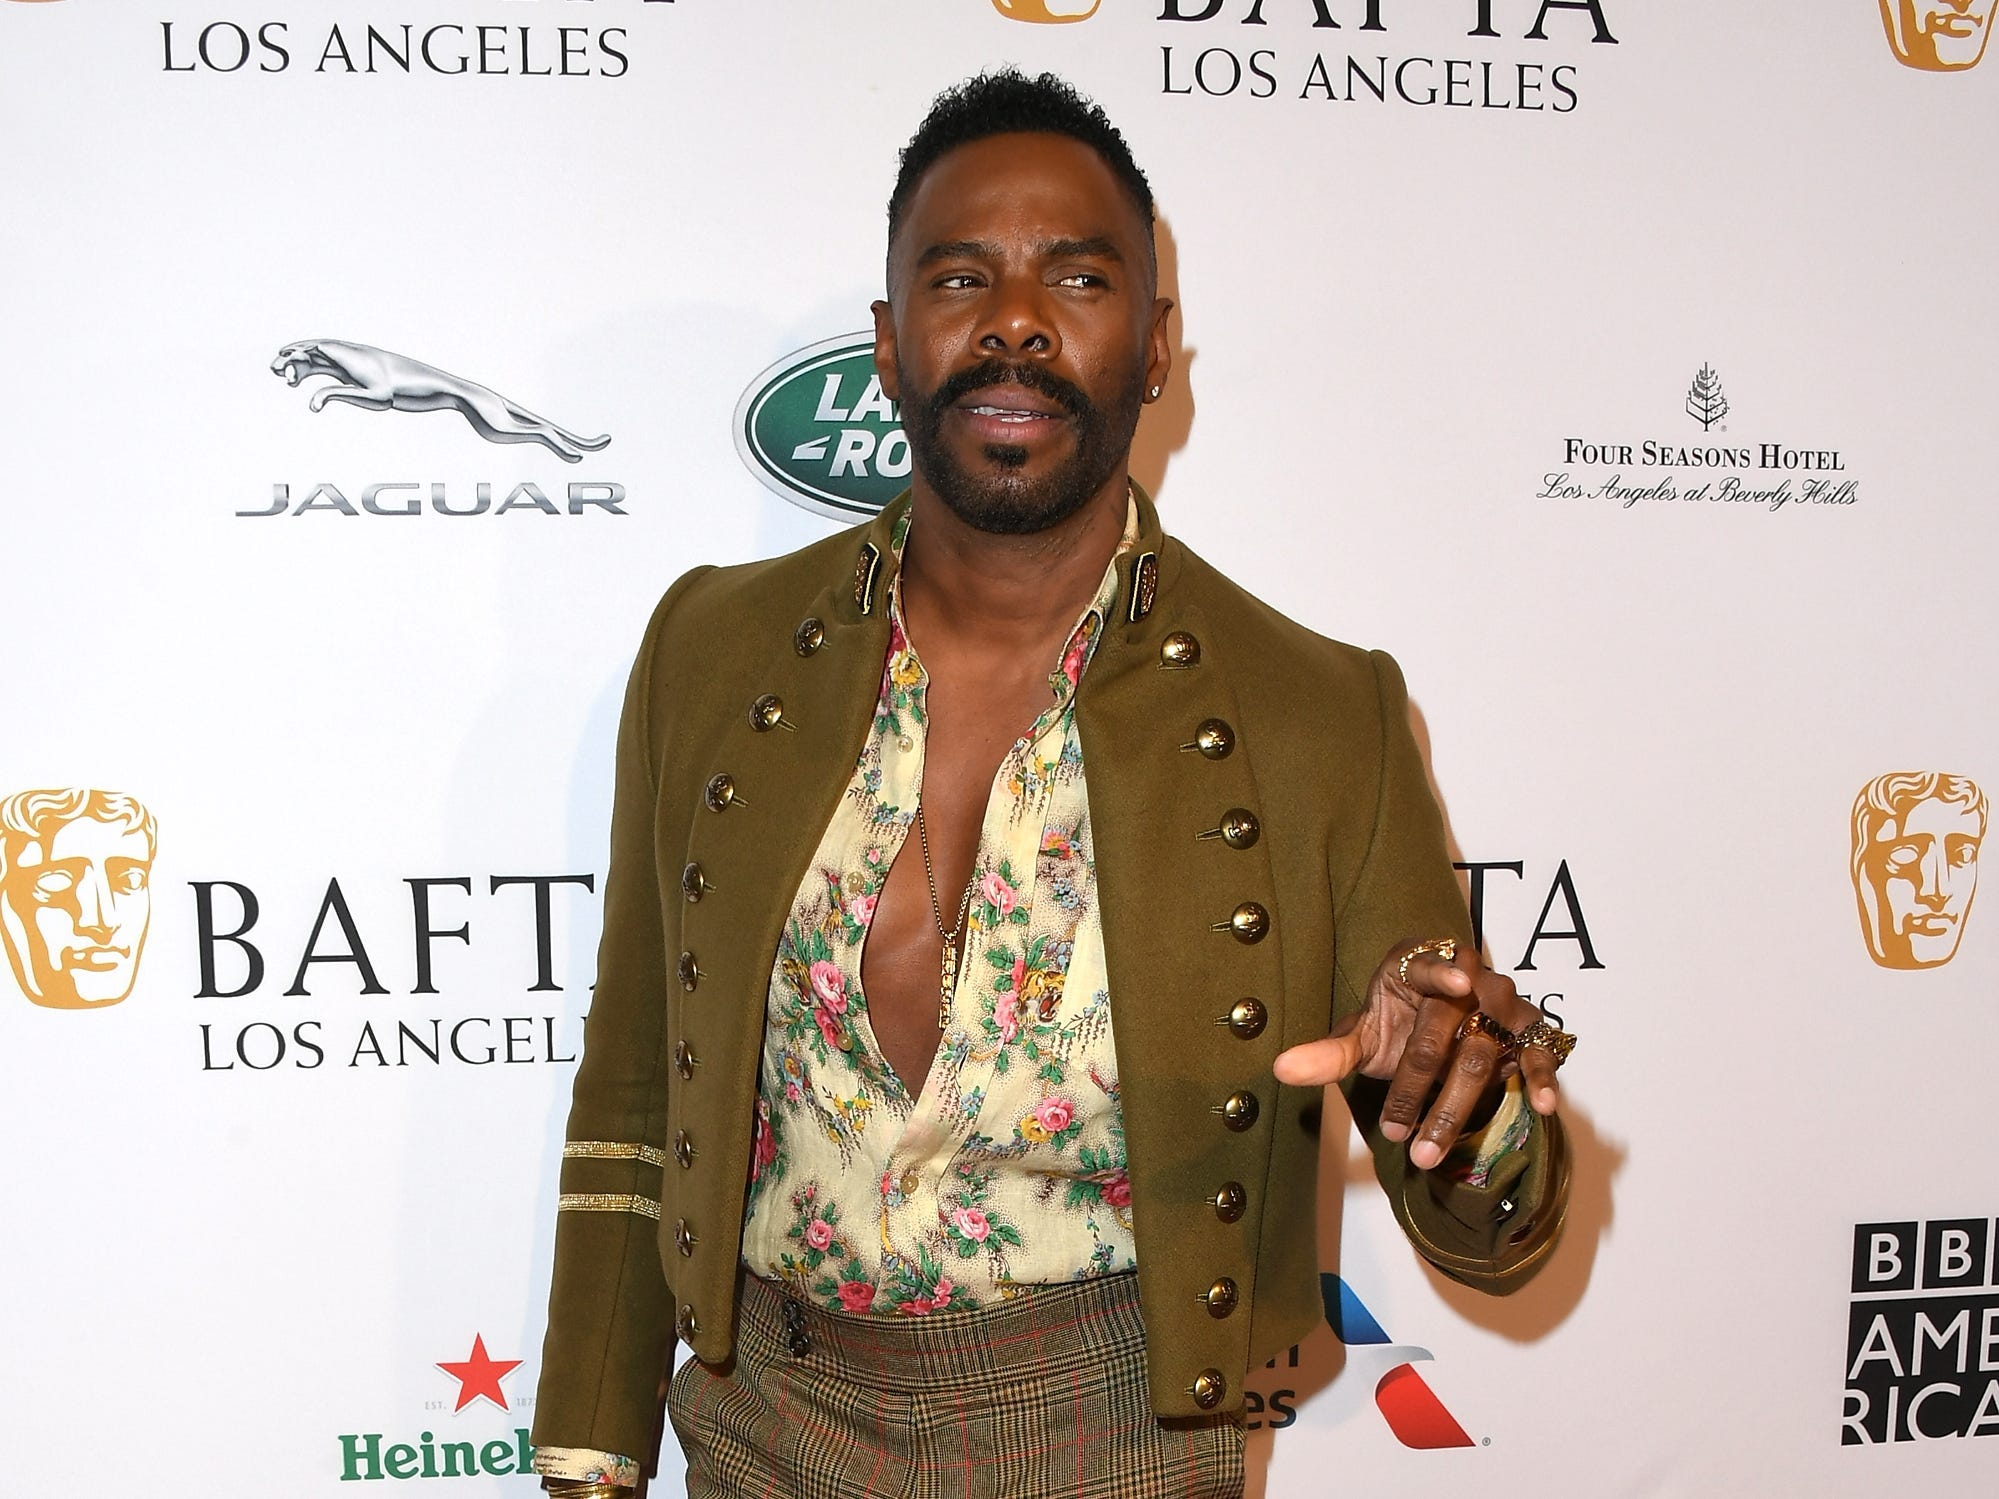 LOS ANGELES, CA - JANUARY 05:  Colman Domingo attends The BAFTA Los Angeles Tea Party at Four Seasons Hotel Los Angeles at Beverly Hills on January 5, 2019 in Los Angeles, California.  (Photo by Jon Kopaloff/Getty Images) ORG XMIT: 775261683 ORIG FILE ID: 1077908178